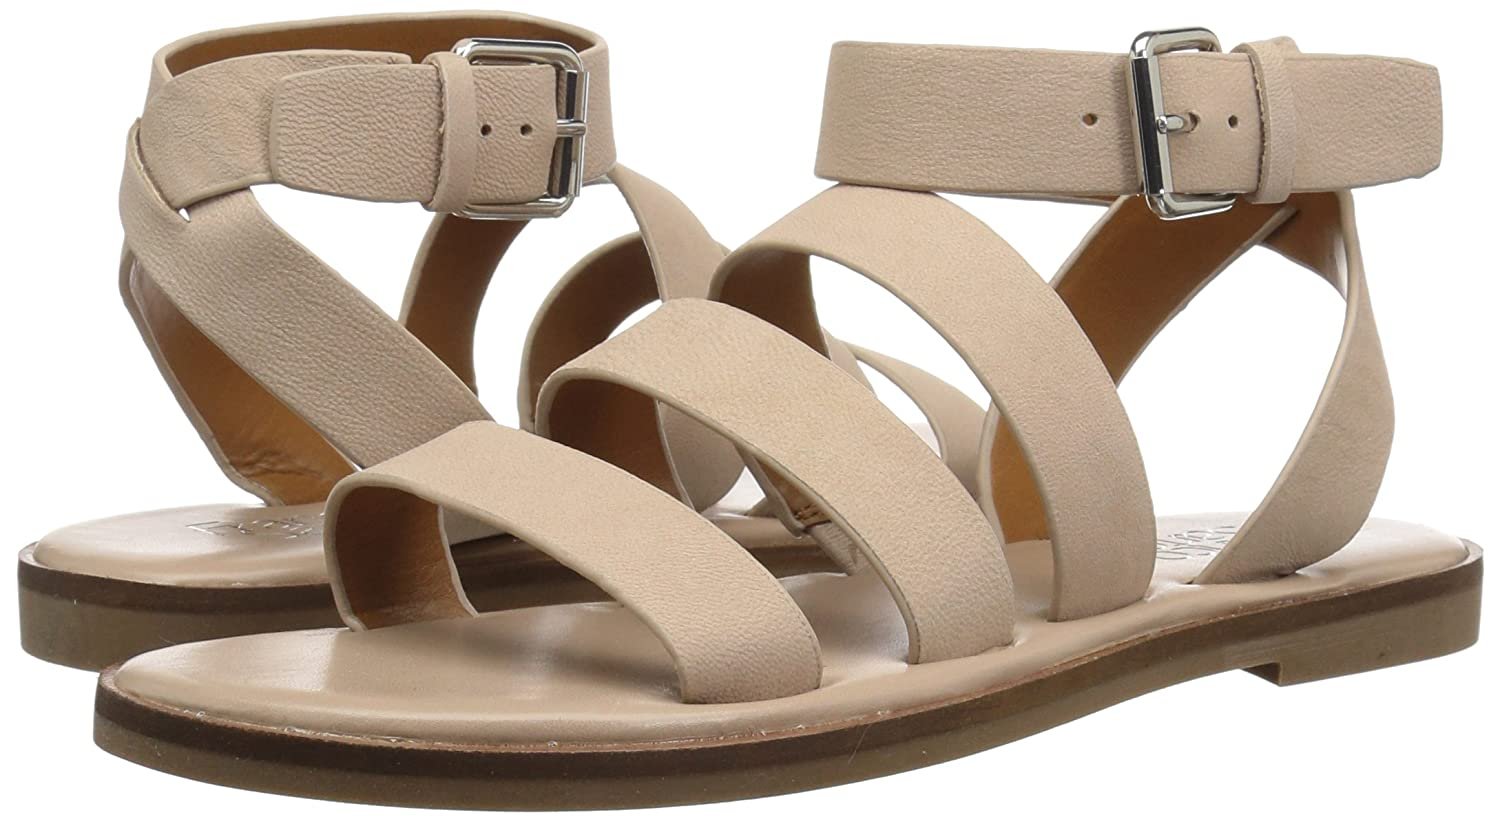 Franco Sarto Women's Kyson Flat US|Light Sandal B078VCSQR2 8.5 B(M) US|Light Flat Bone f56ec4